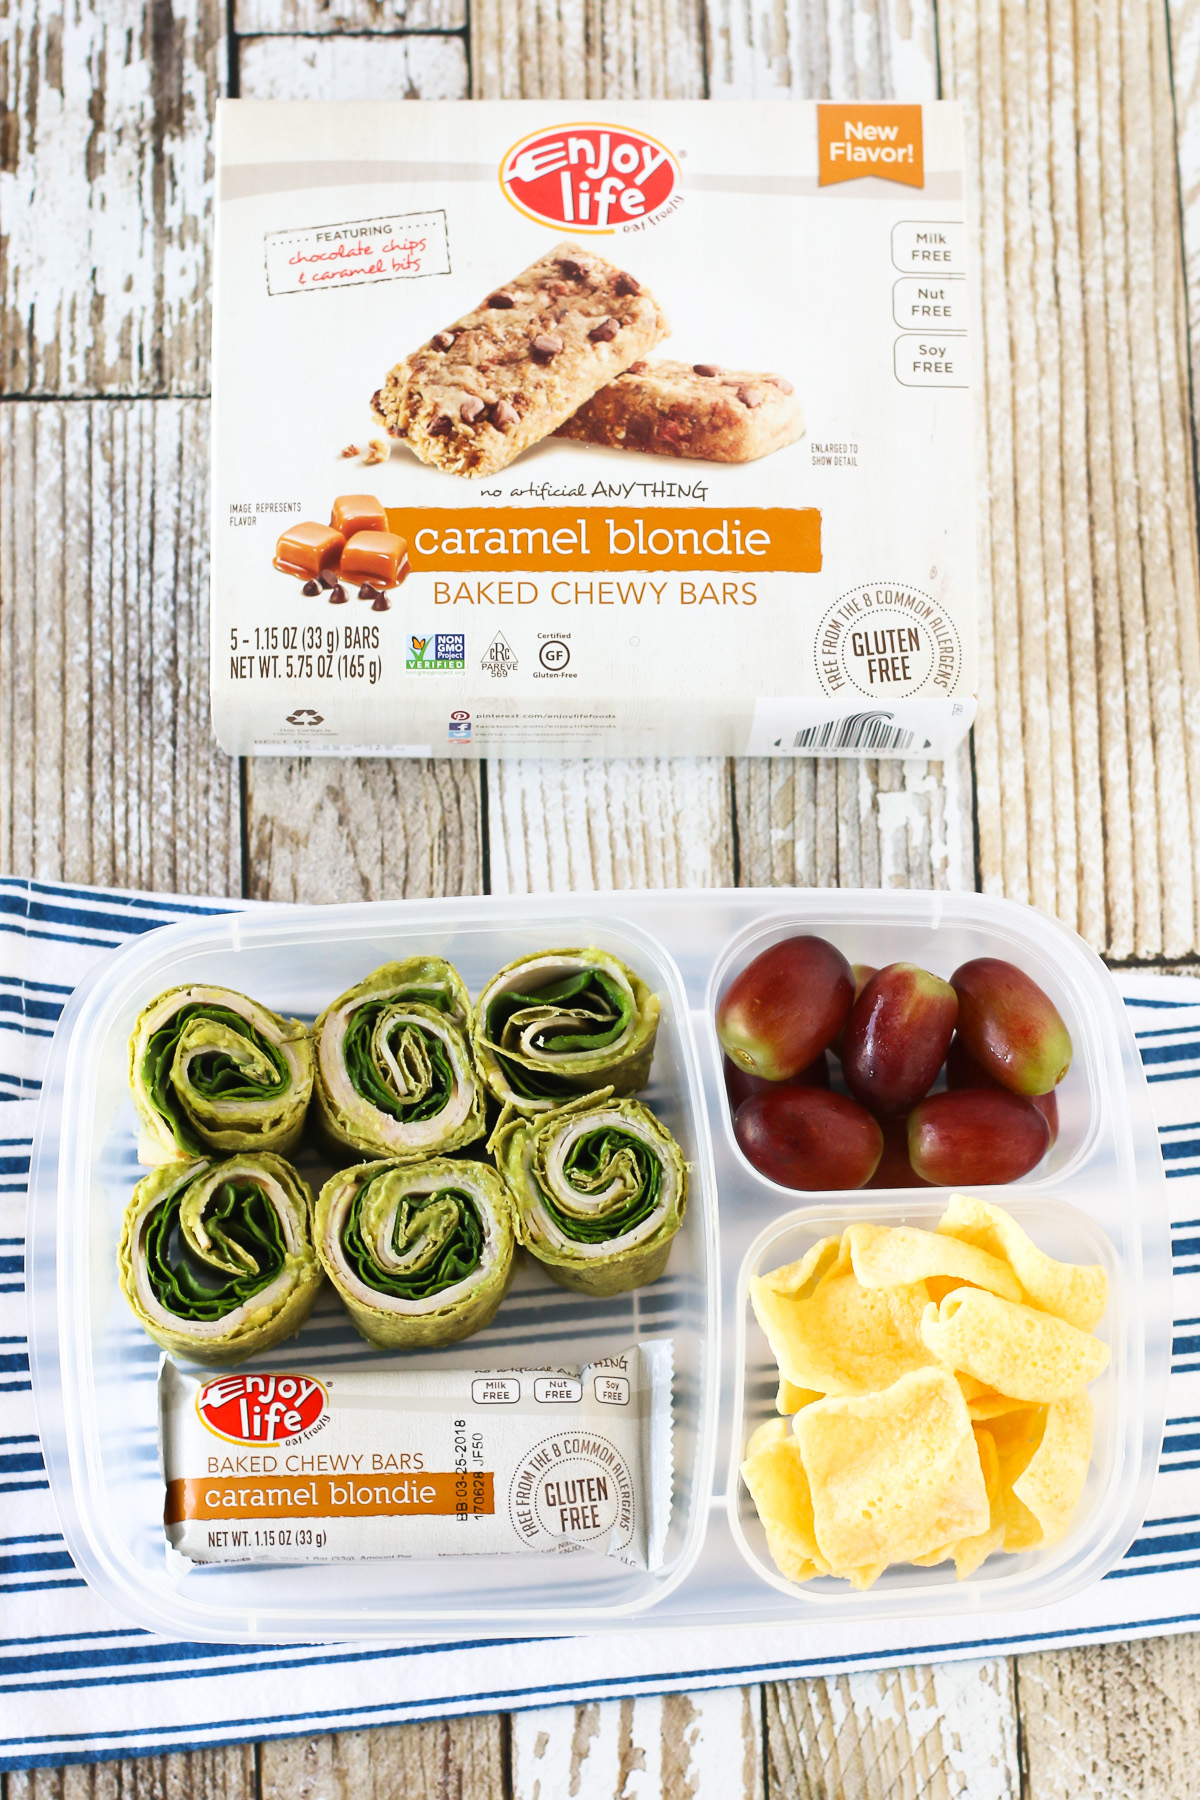 Easy Allergen Free School Lunches. Gluten free turkey, spinach and guacamole pinwheels, served with an Enjoy Life Baked Chewy Bar.